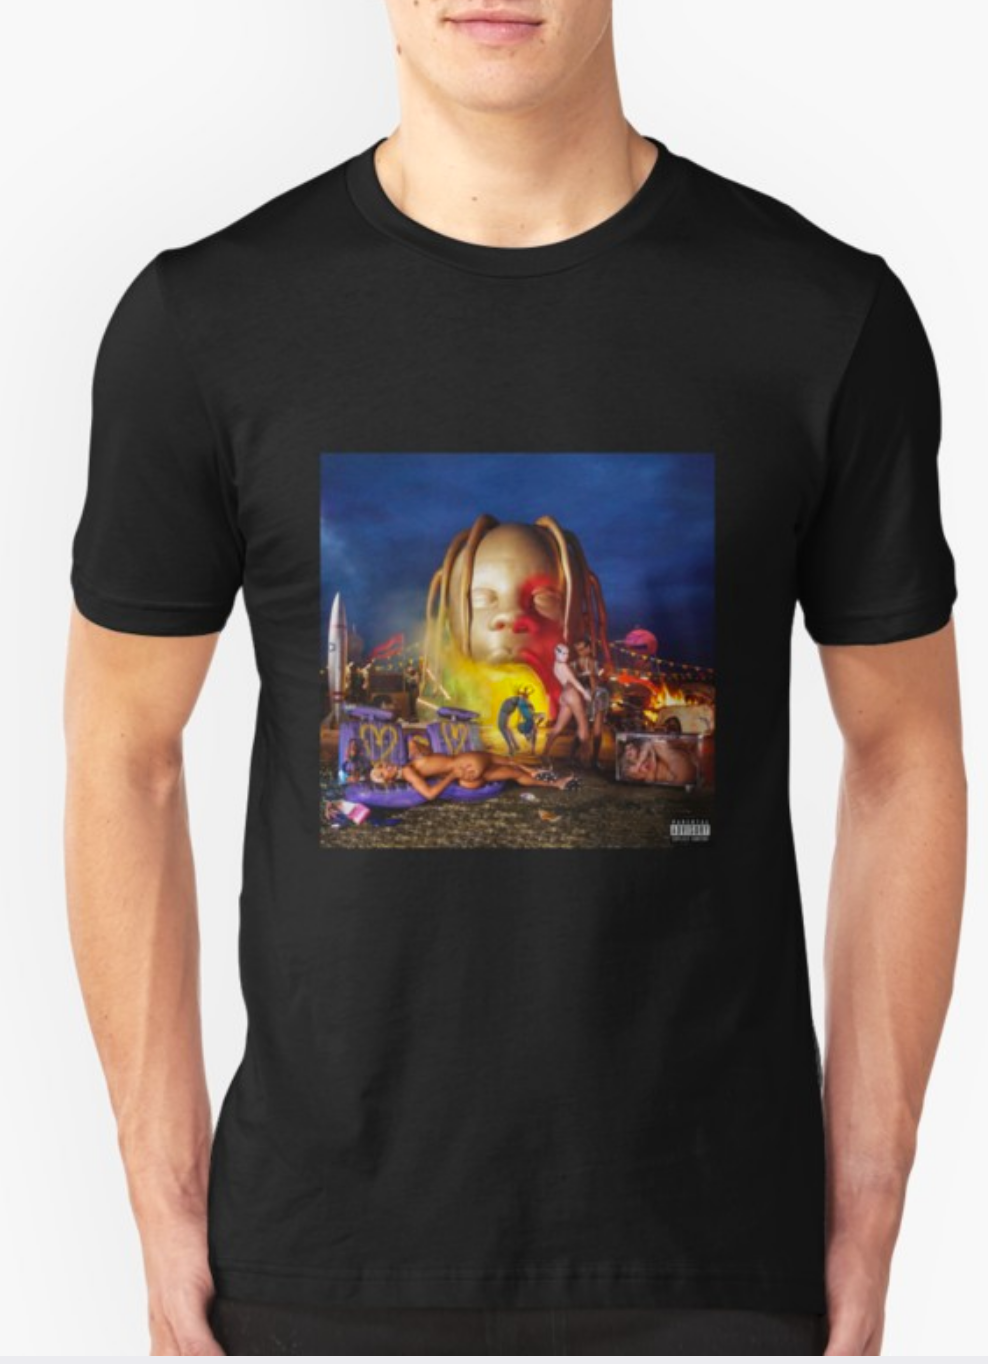 Travis Scott Explicit Astroworld Album Cover T-shirt